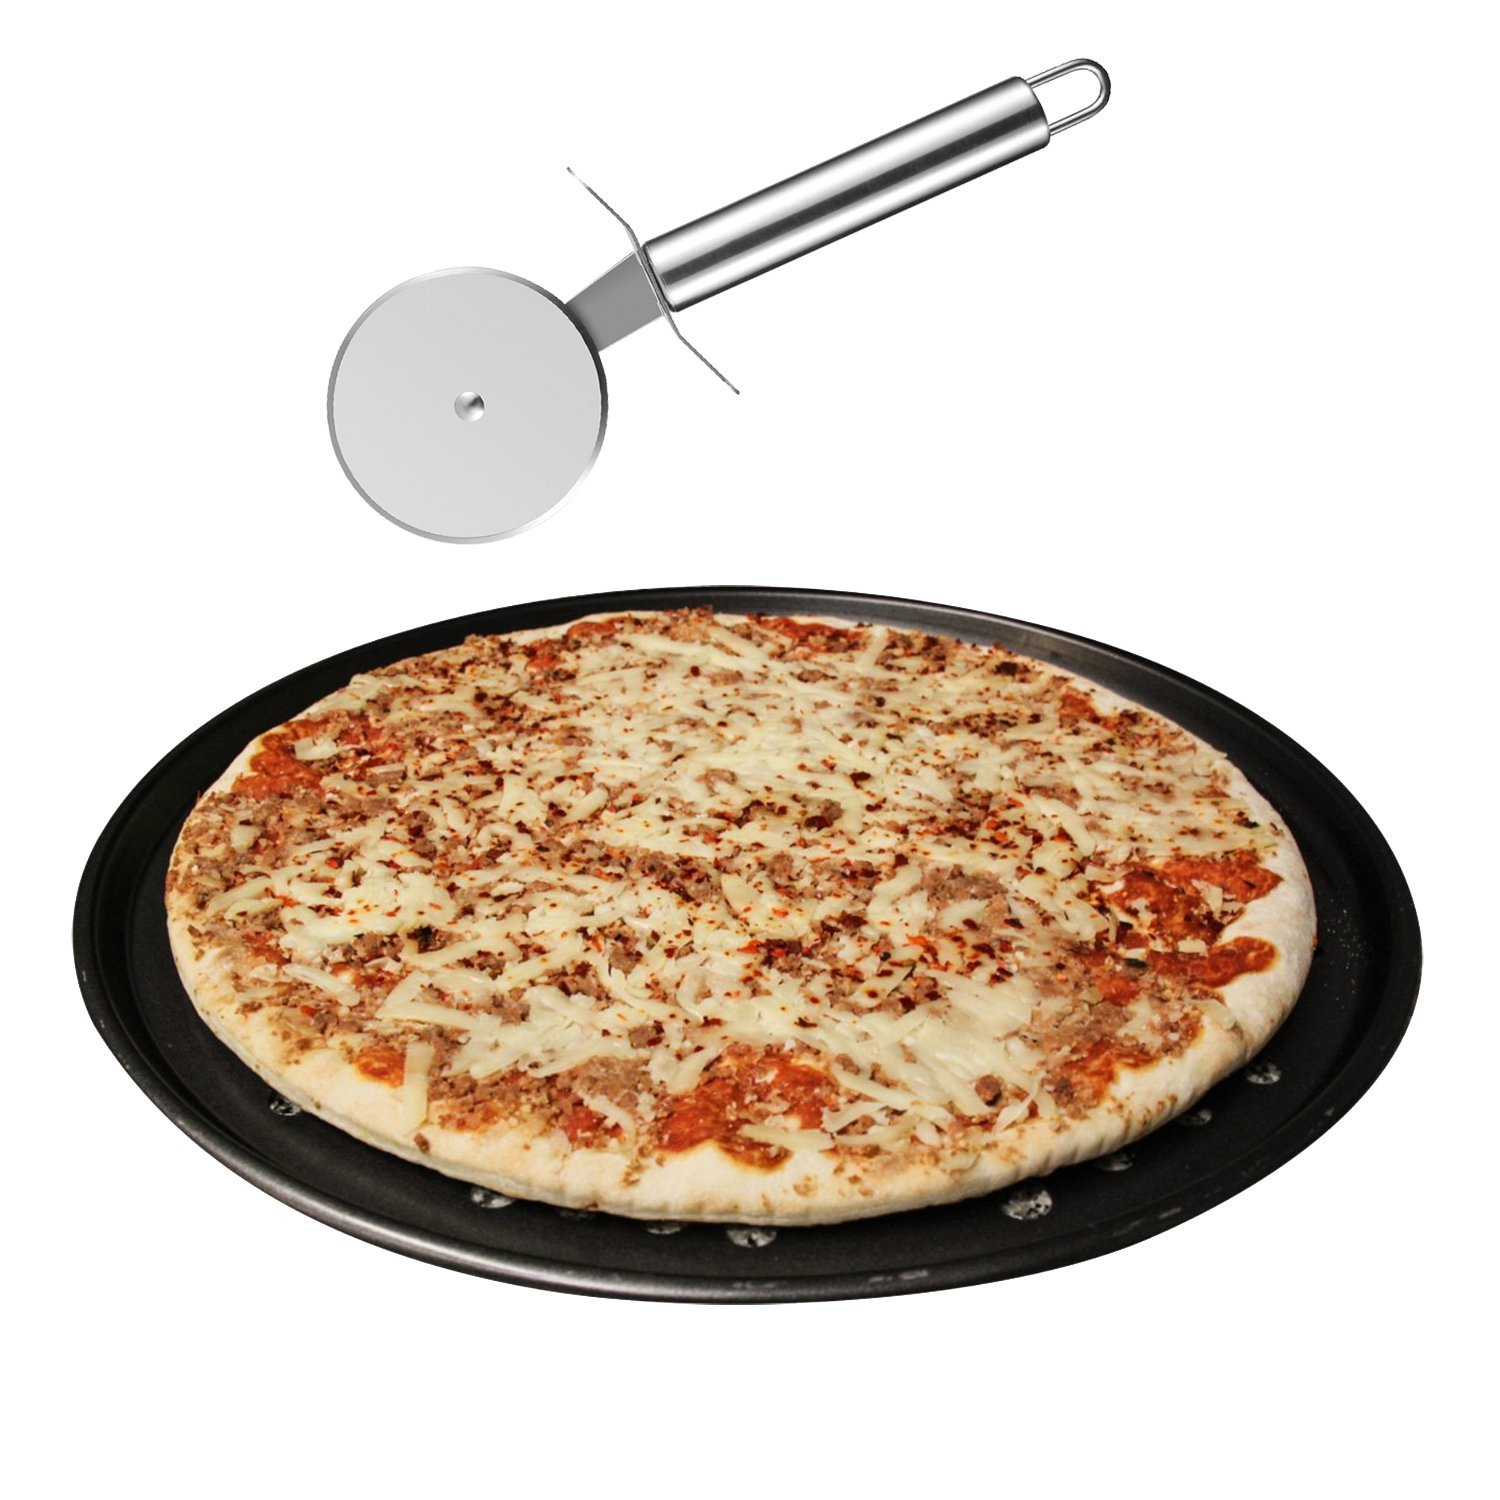 "Pizza Cutter and Pan,PEMOTech Premium Quality Stainless Steel Pizza Cutter Sharp Blade Good Grips Anti Slip Pizza Wheel-Slicer for Pizzza , Dish Washer Safe,Bonus with 12.5""Pizza Pan"